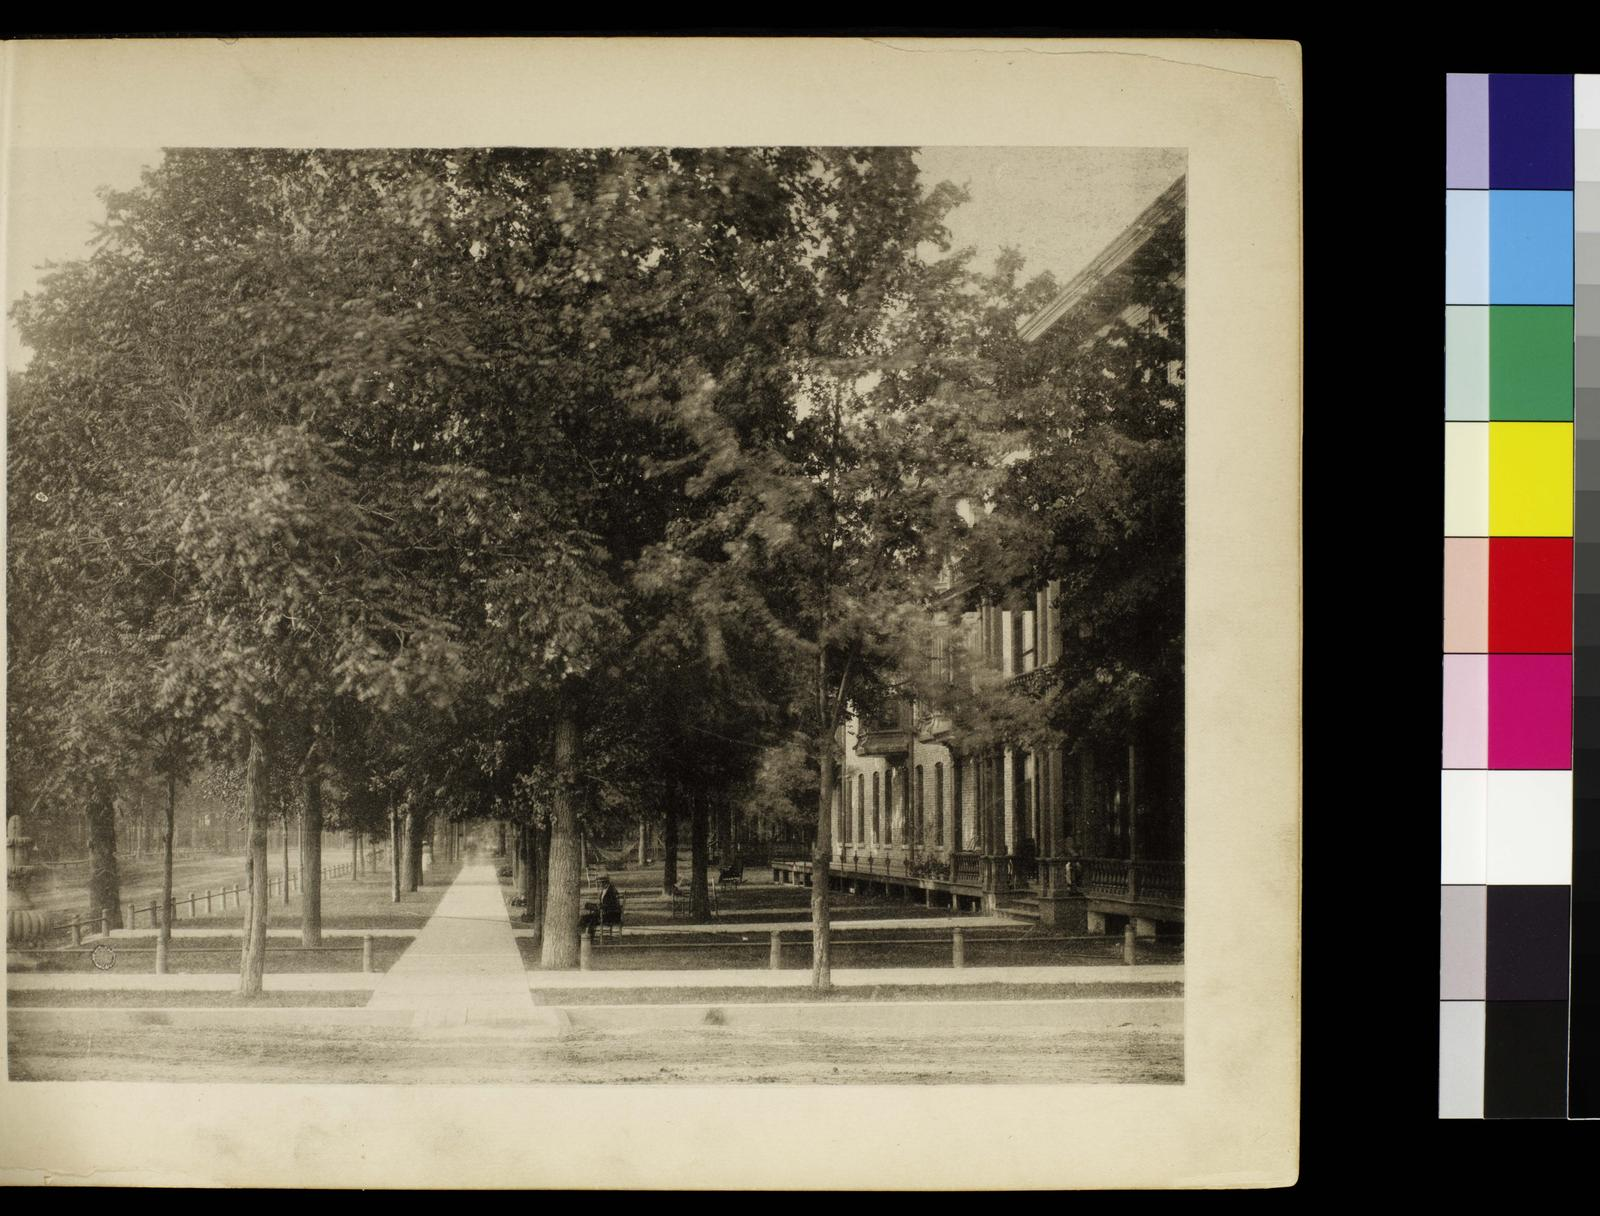 Photographic views of picturesque Evanston, state of Illinois. Avenue House. Versos